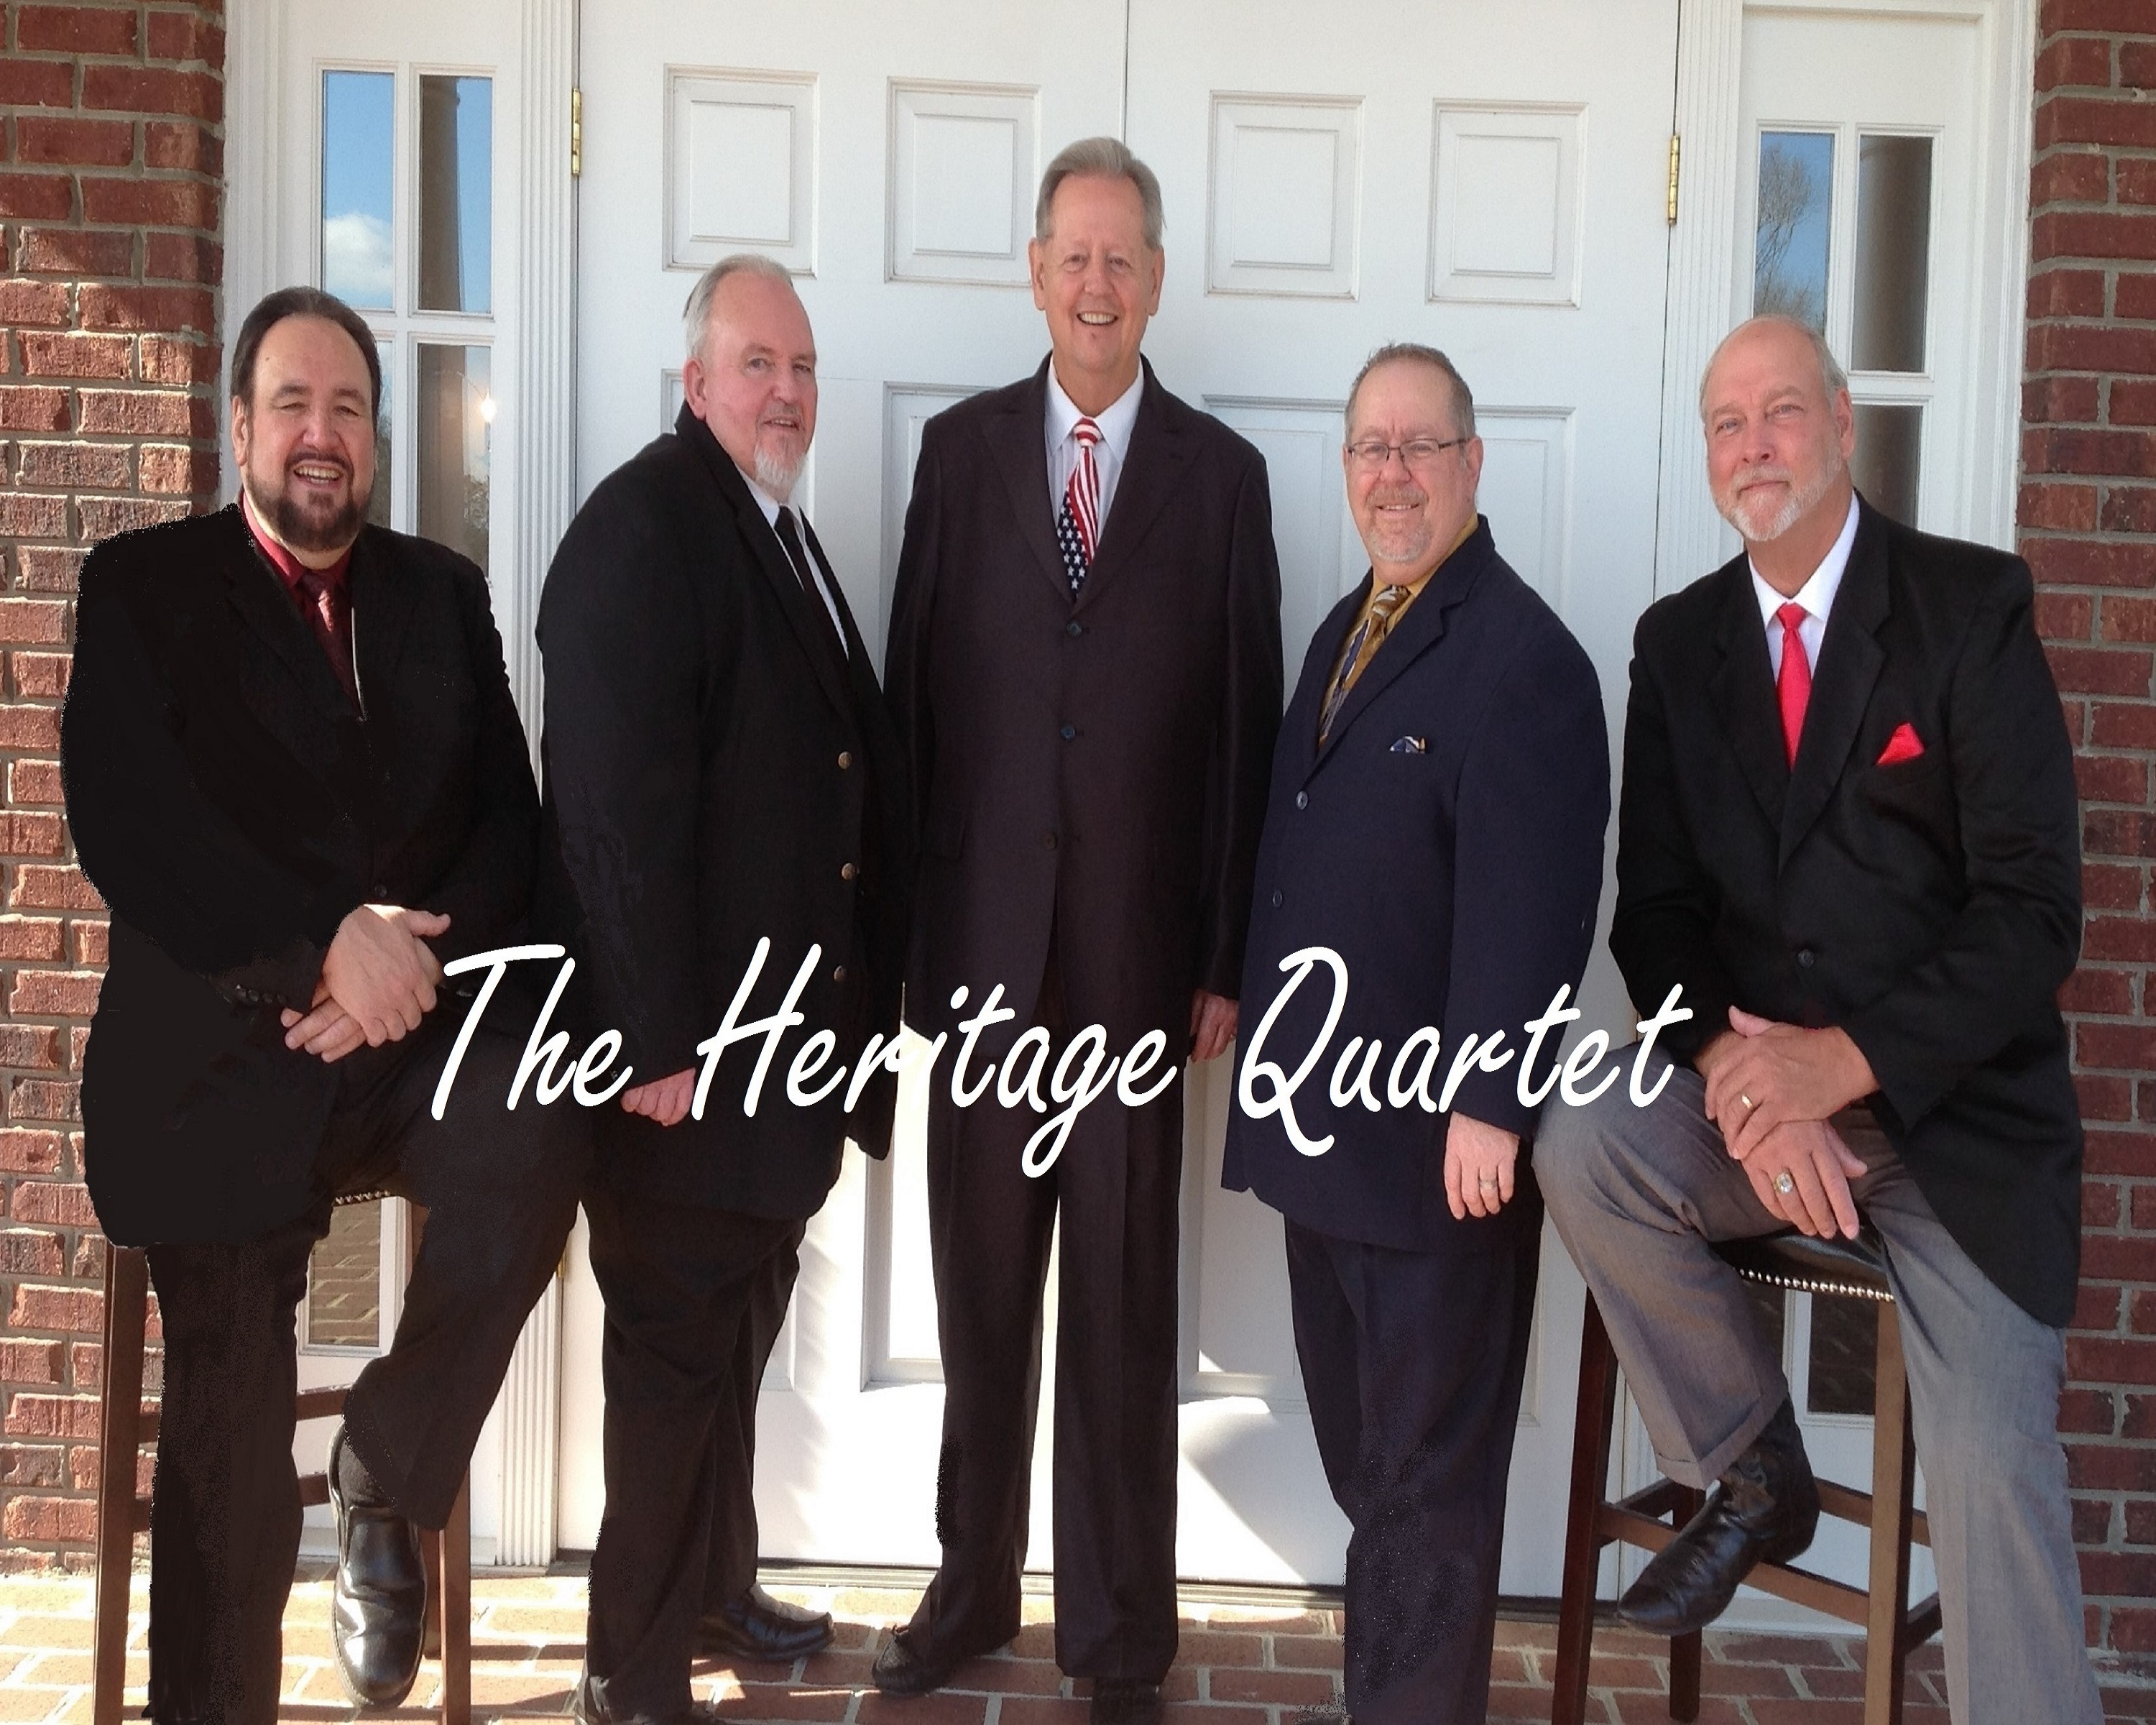 THE HERITAGE QUARTET